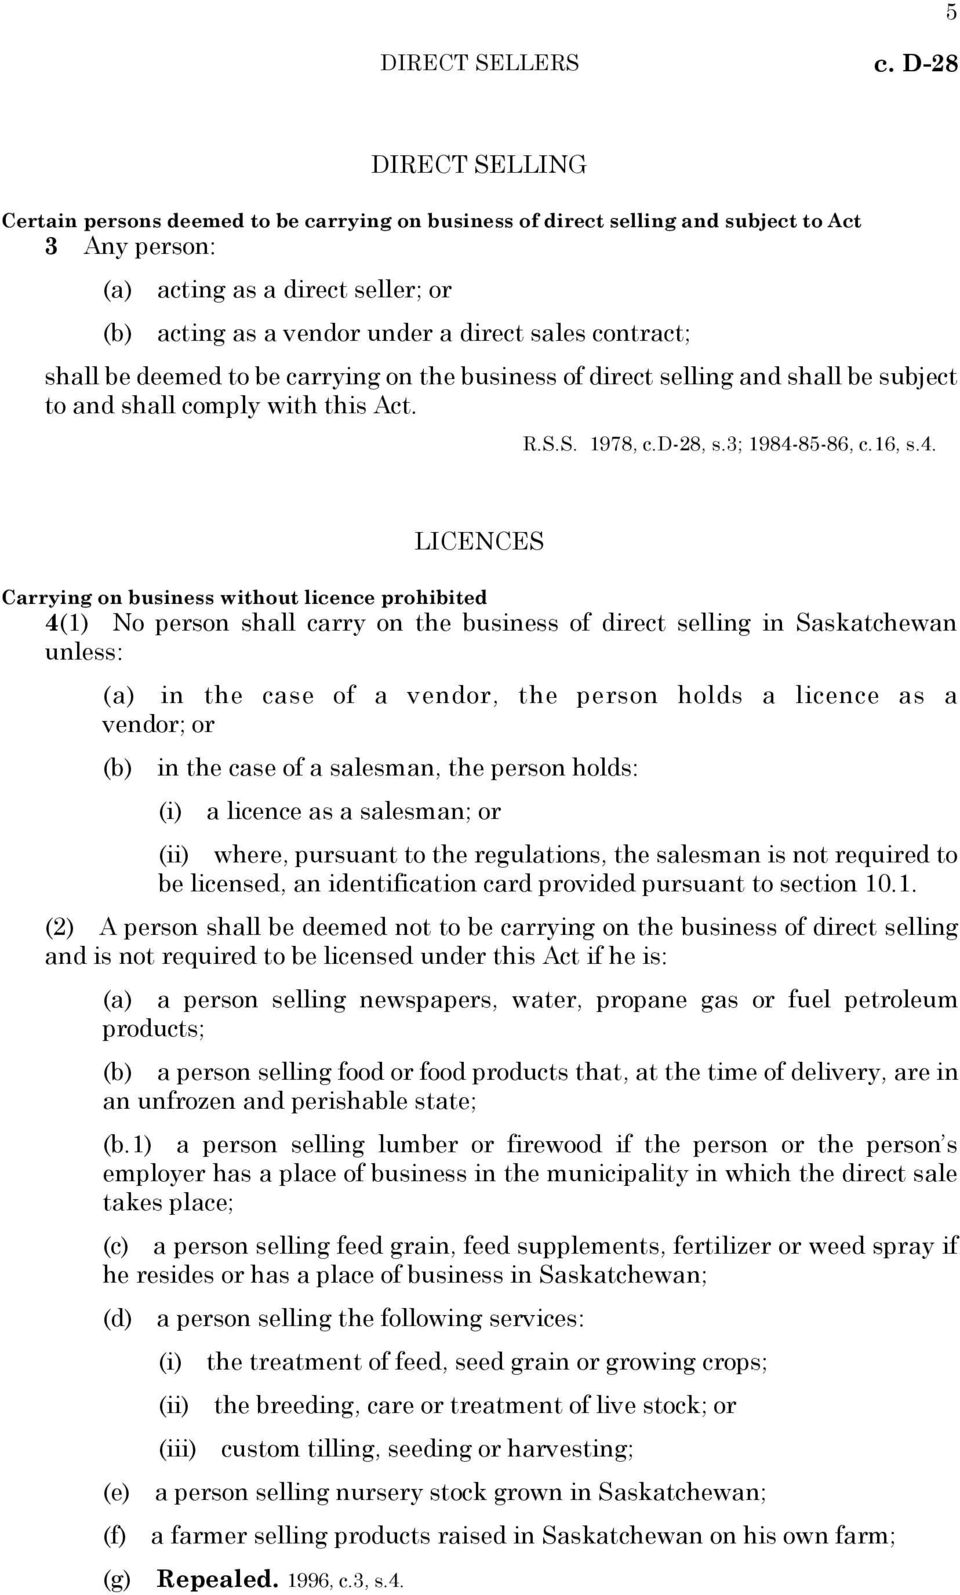 contract; shall be deemed to be carrying on the business of direct selling and shall be subject to and shall comply with this Act. R.S.S. 1978, c.d-28, s.3; 1984-